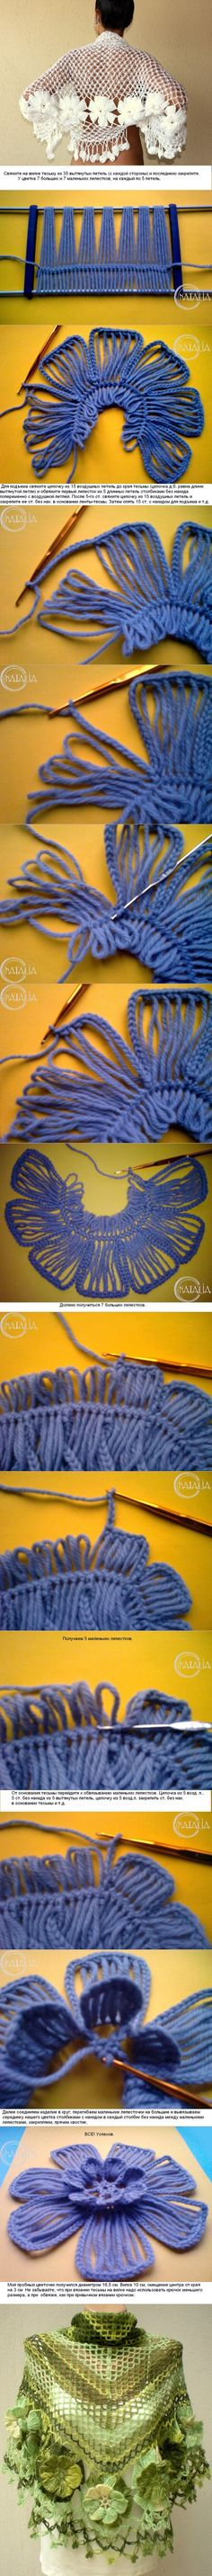 #Crochet #Flower #Tutorial - So beautiful! This type of flower makes a big…